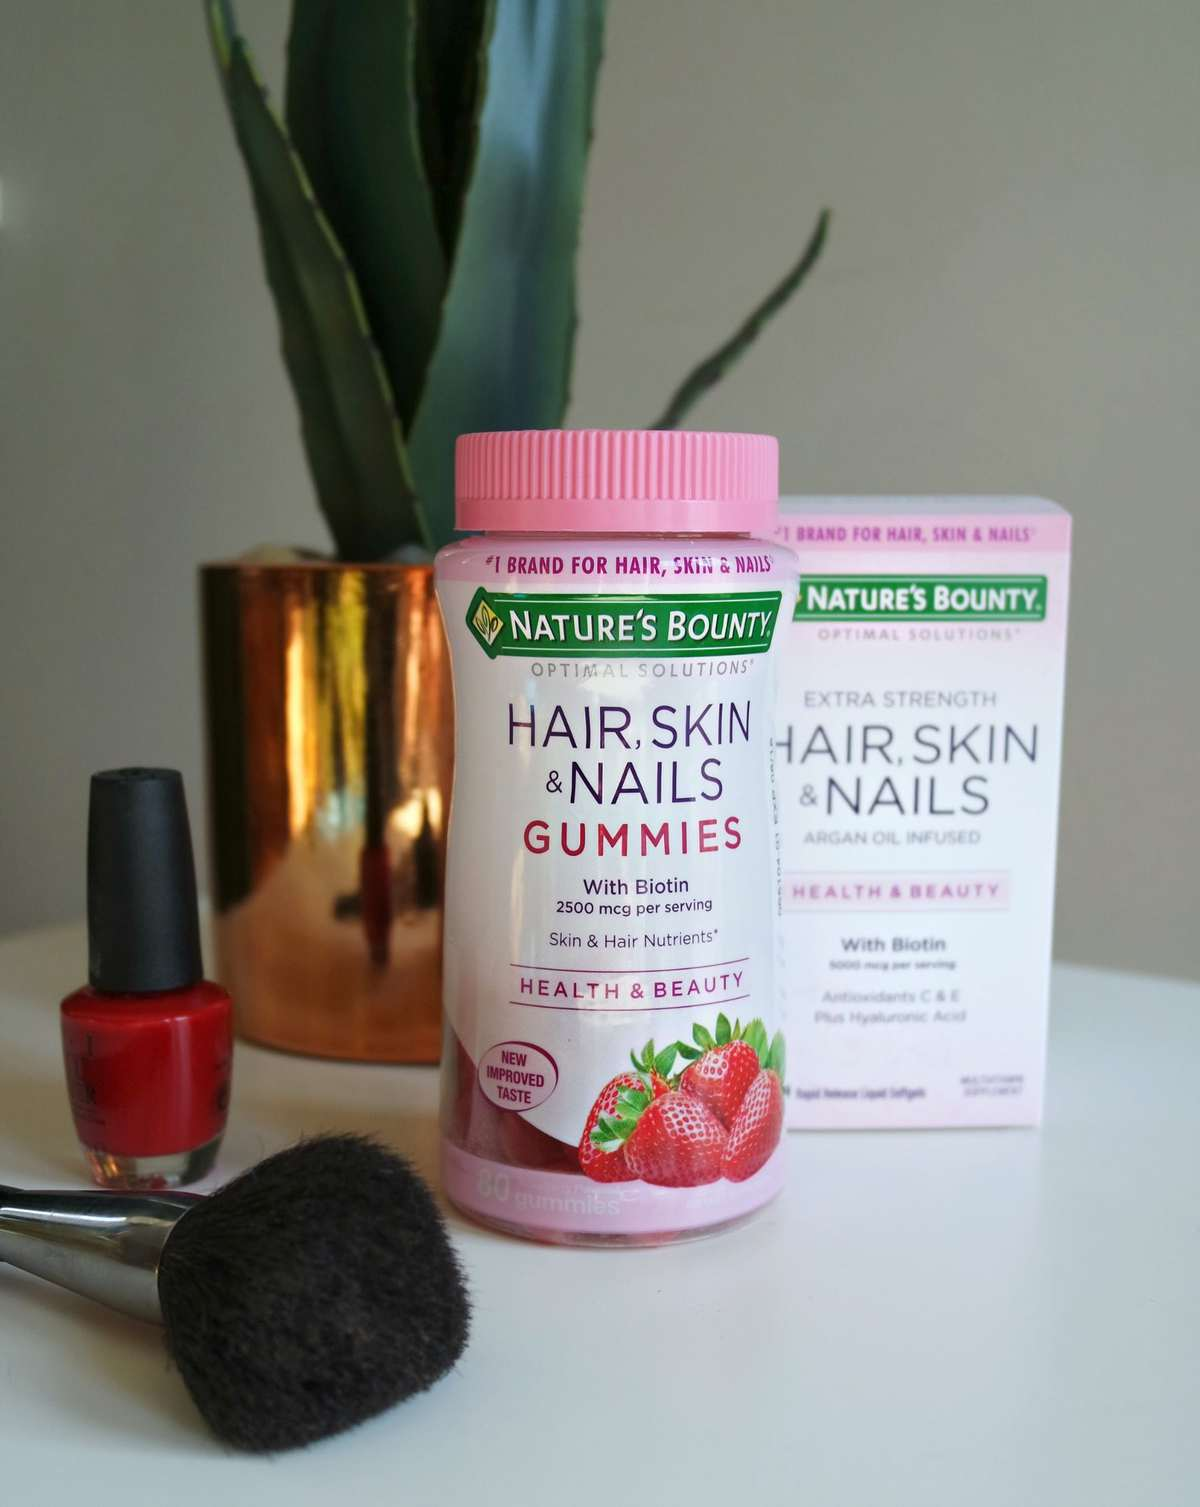 Nature's Bounty Gummies for Hair and Nails Review - Wardrobe Oxygen (sponsored)